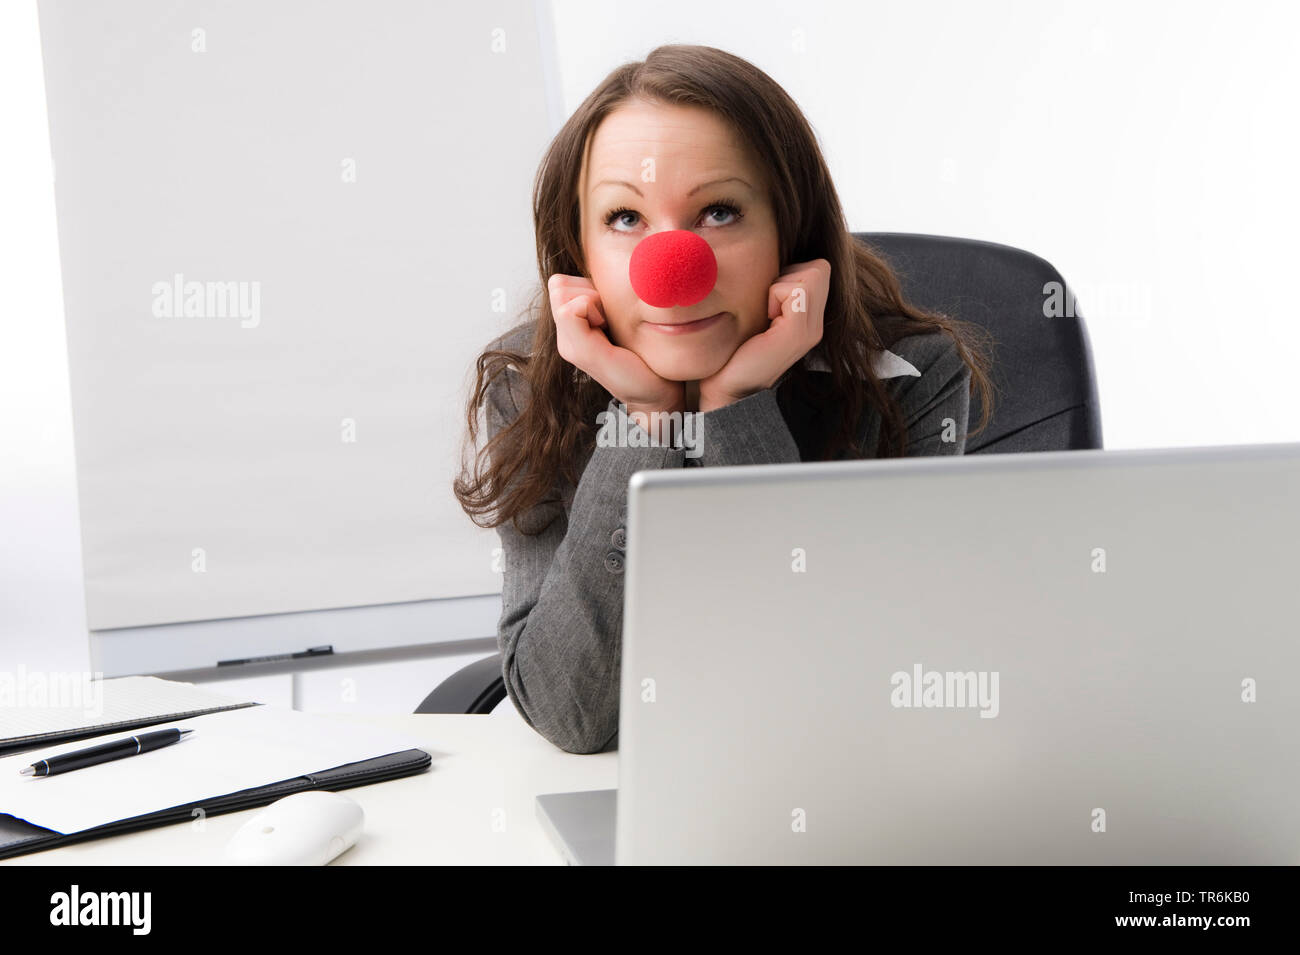 Geschaeftsfrau mit roter Clownnase | business woman with red nose | BLWS486078.jpg [ (c) blickwinkel/McPHOTO/M. Begsteiger Tel. +49 (0)2302-2793220, E - Stock Image